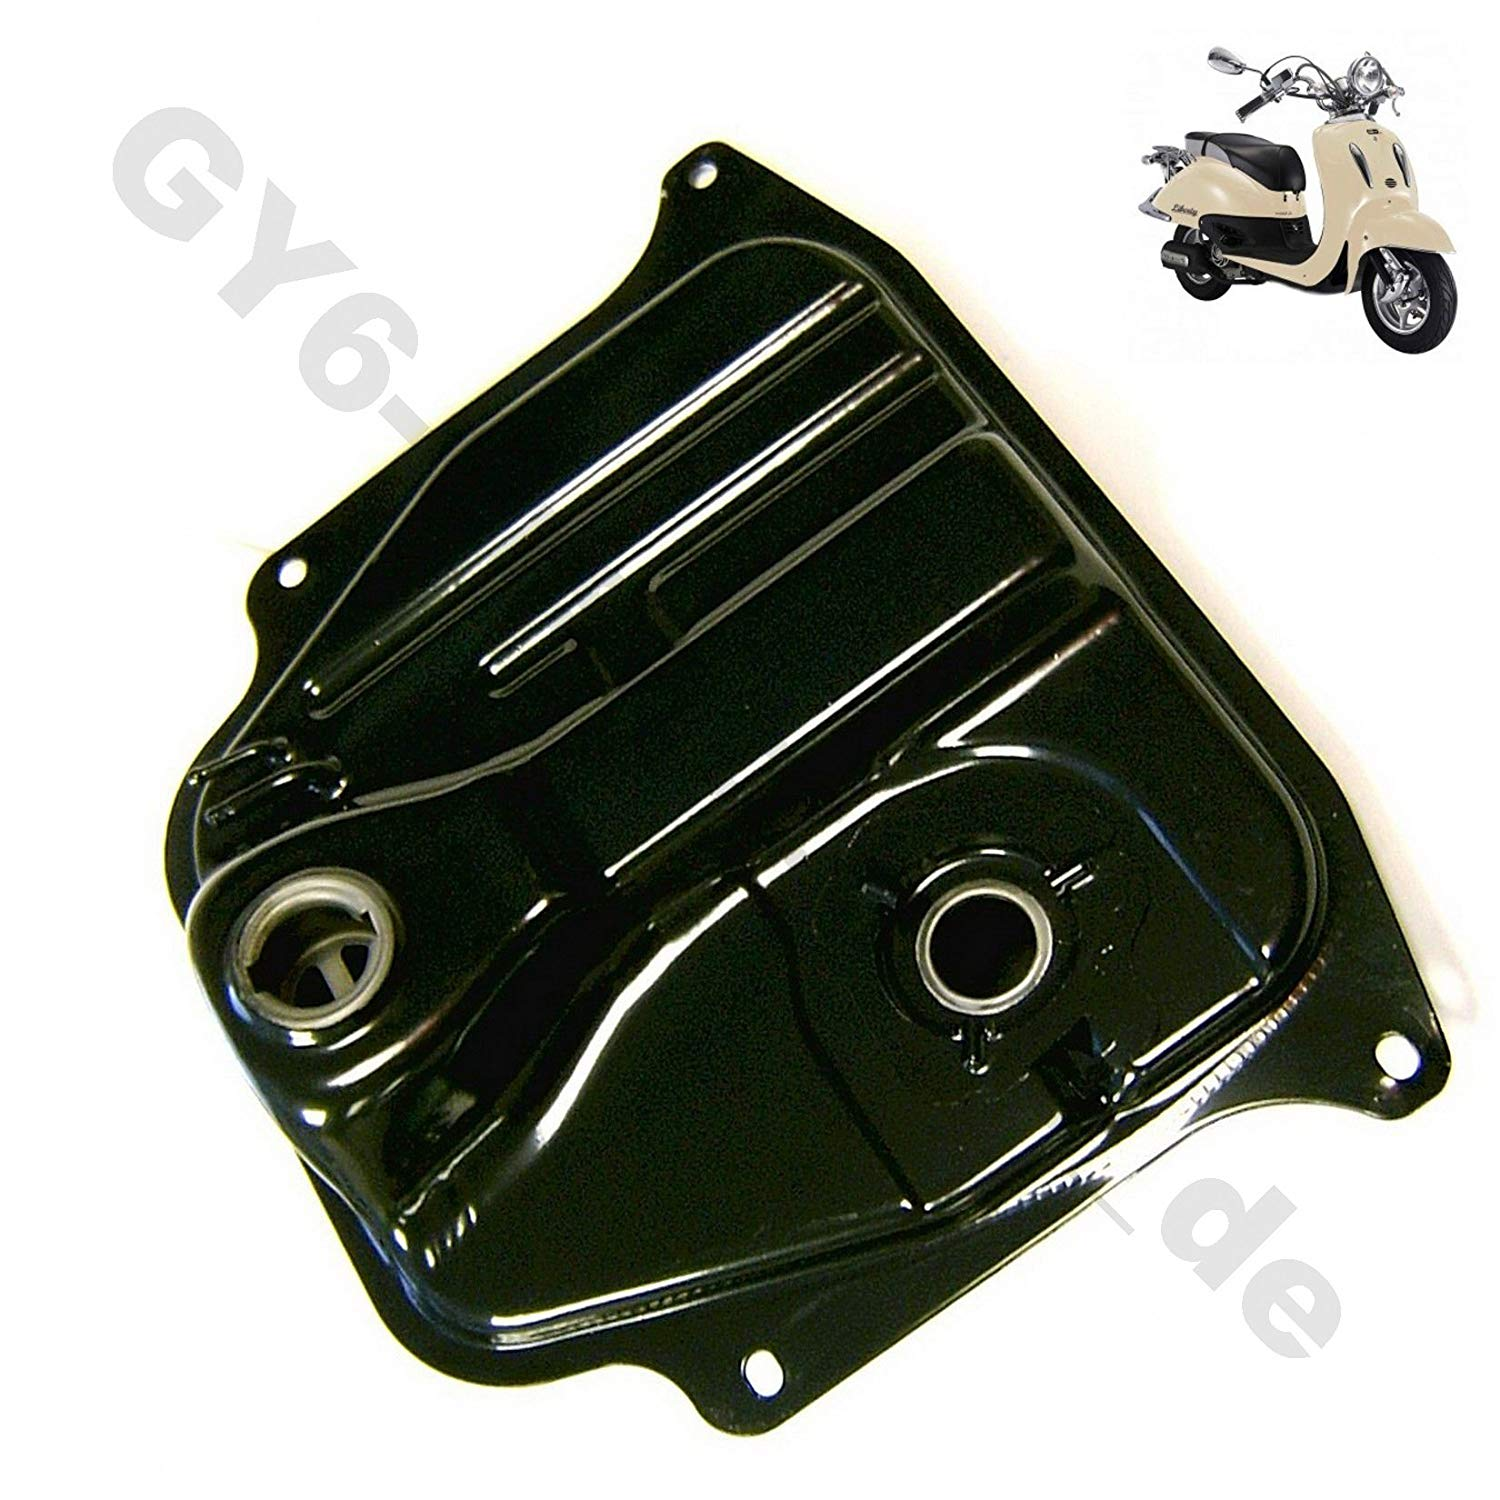 Cheap Gas Tank For Scooter Find Deals On Line 52cc Scooterx Power Kart Go Get Quotations Fuel Chinese Retro Style Vintage Gy6 50